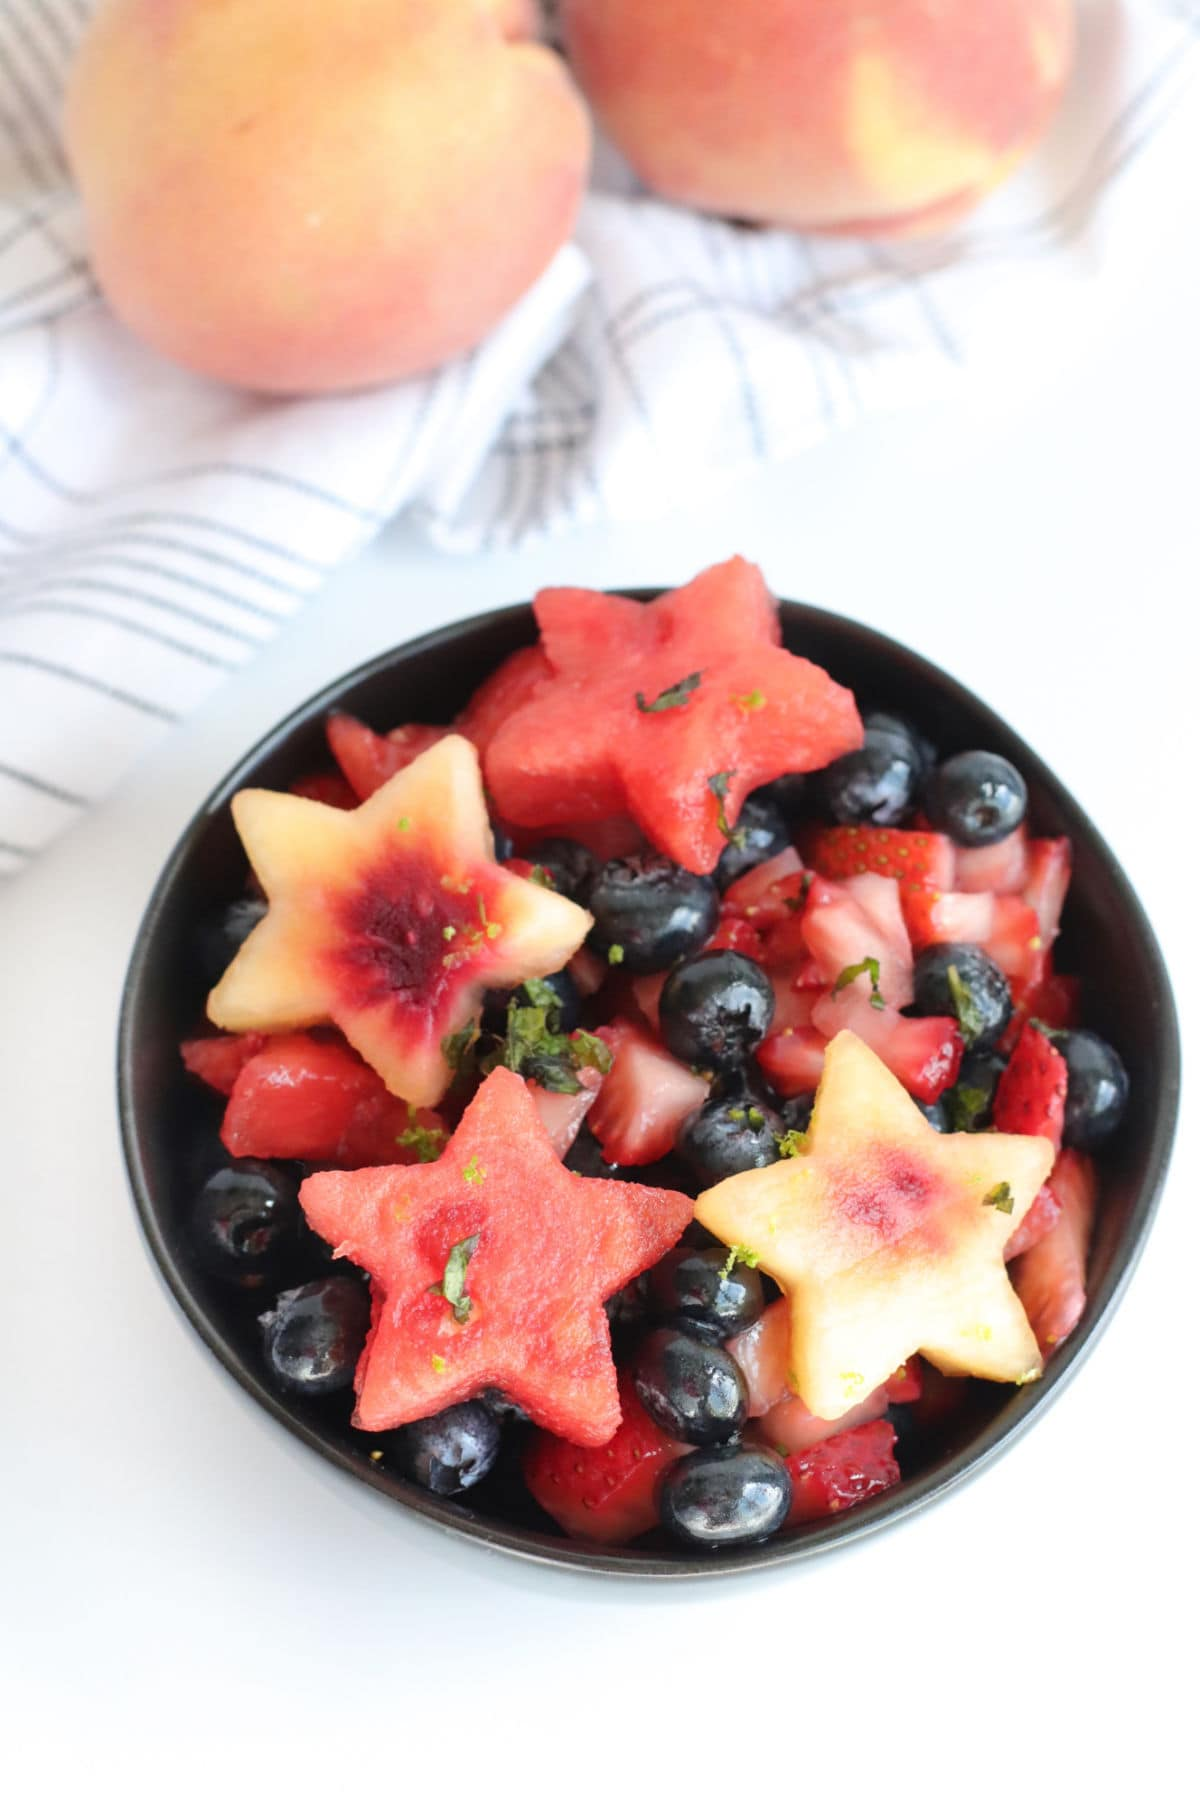 Overhead view of a bowl with watermelon and peach slices cut like stars and fresh blueberries.